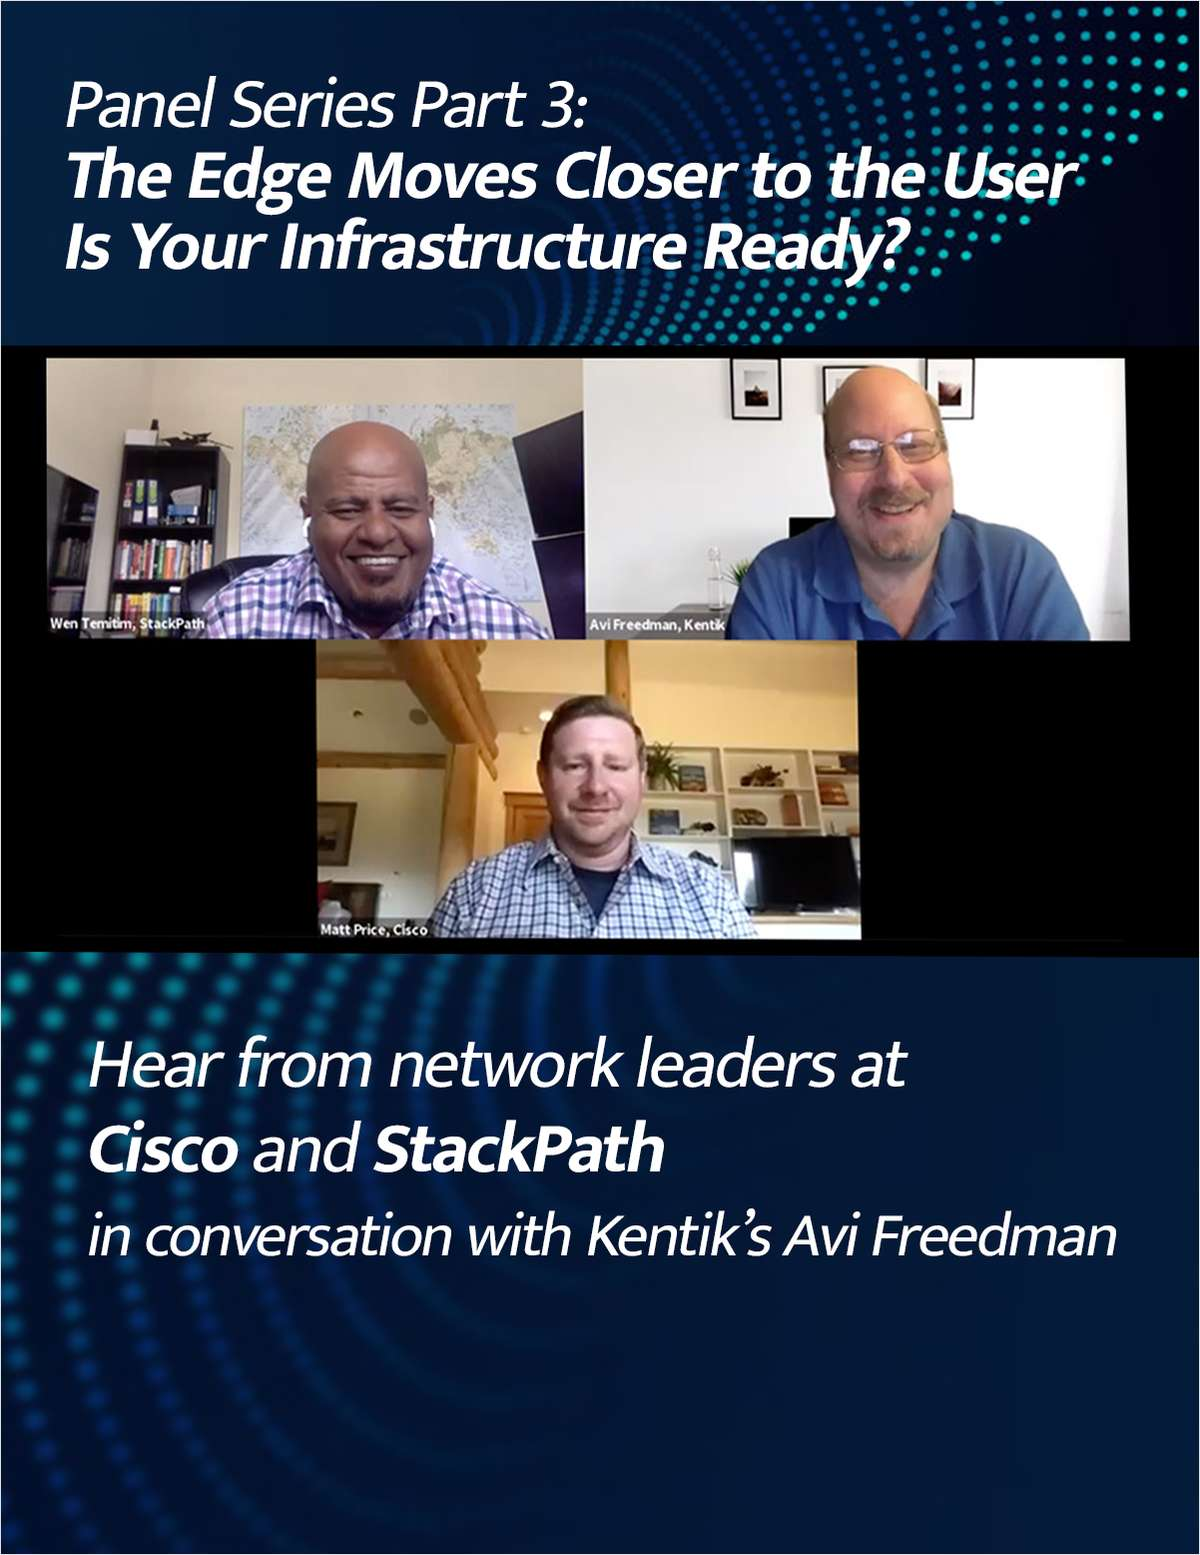 Networking Leaders Panel Series 3: The Edge Moves Closer to the User - Is Your Infrastructure Ready?